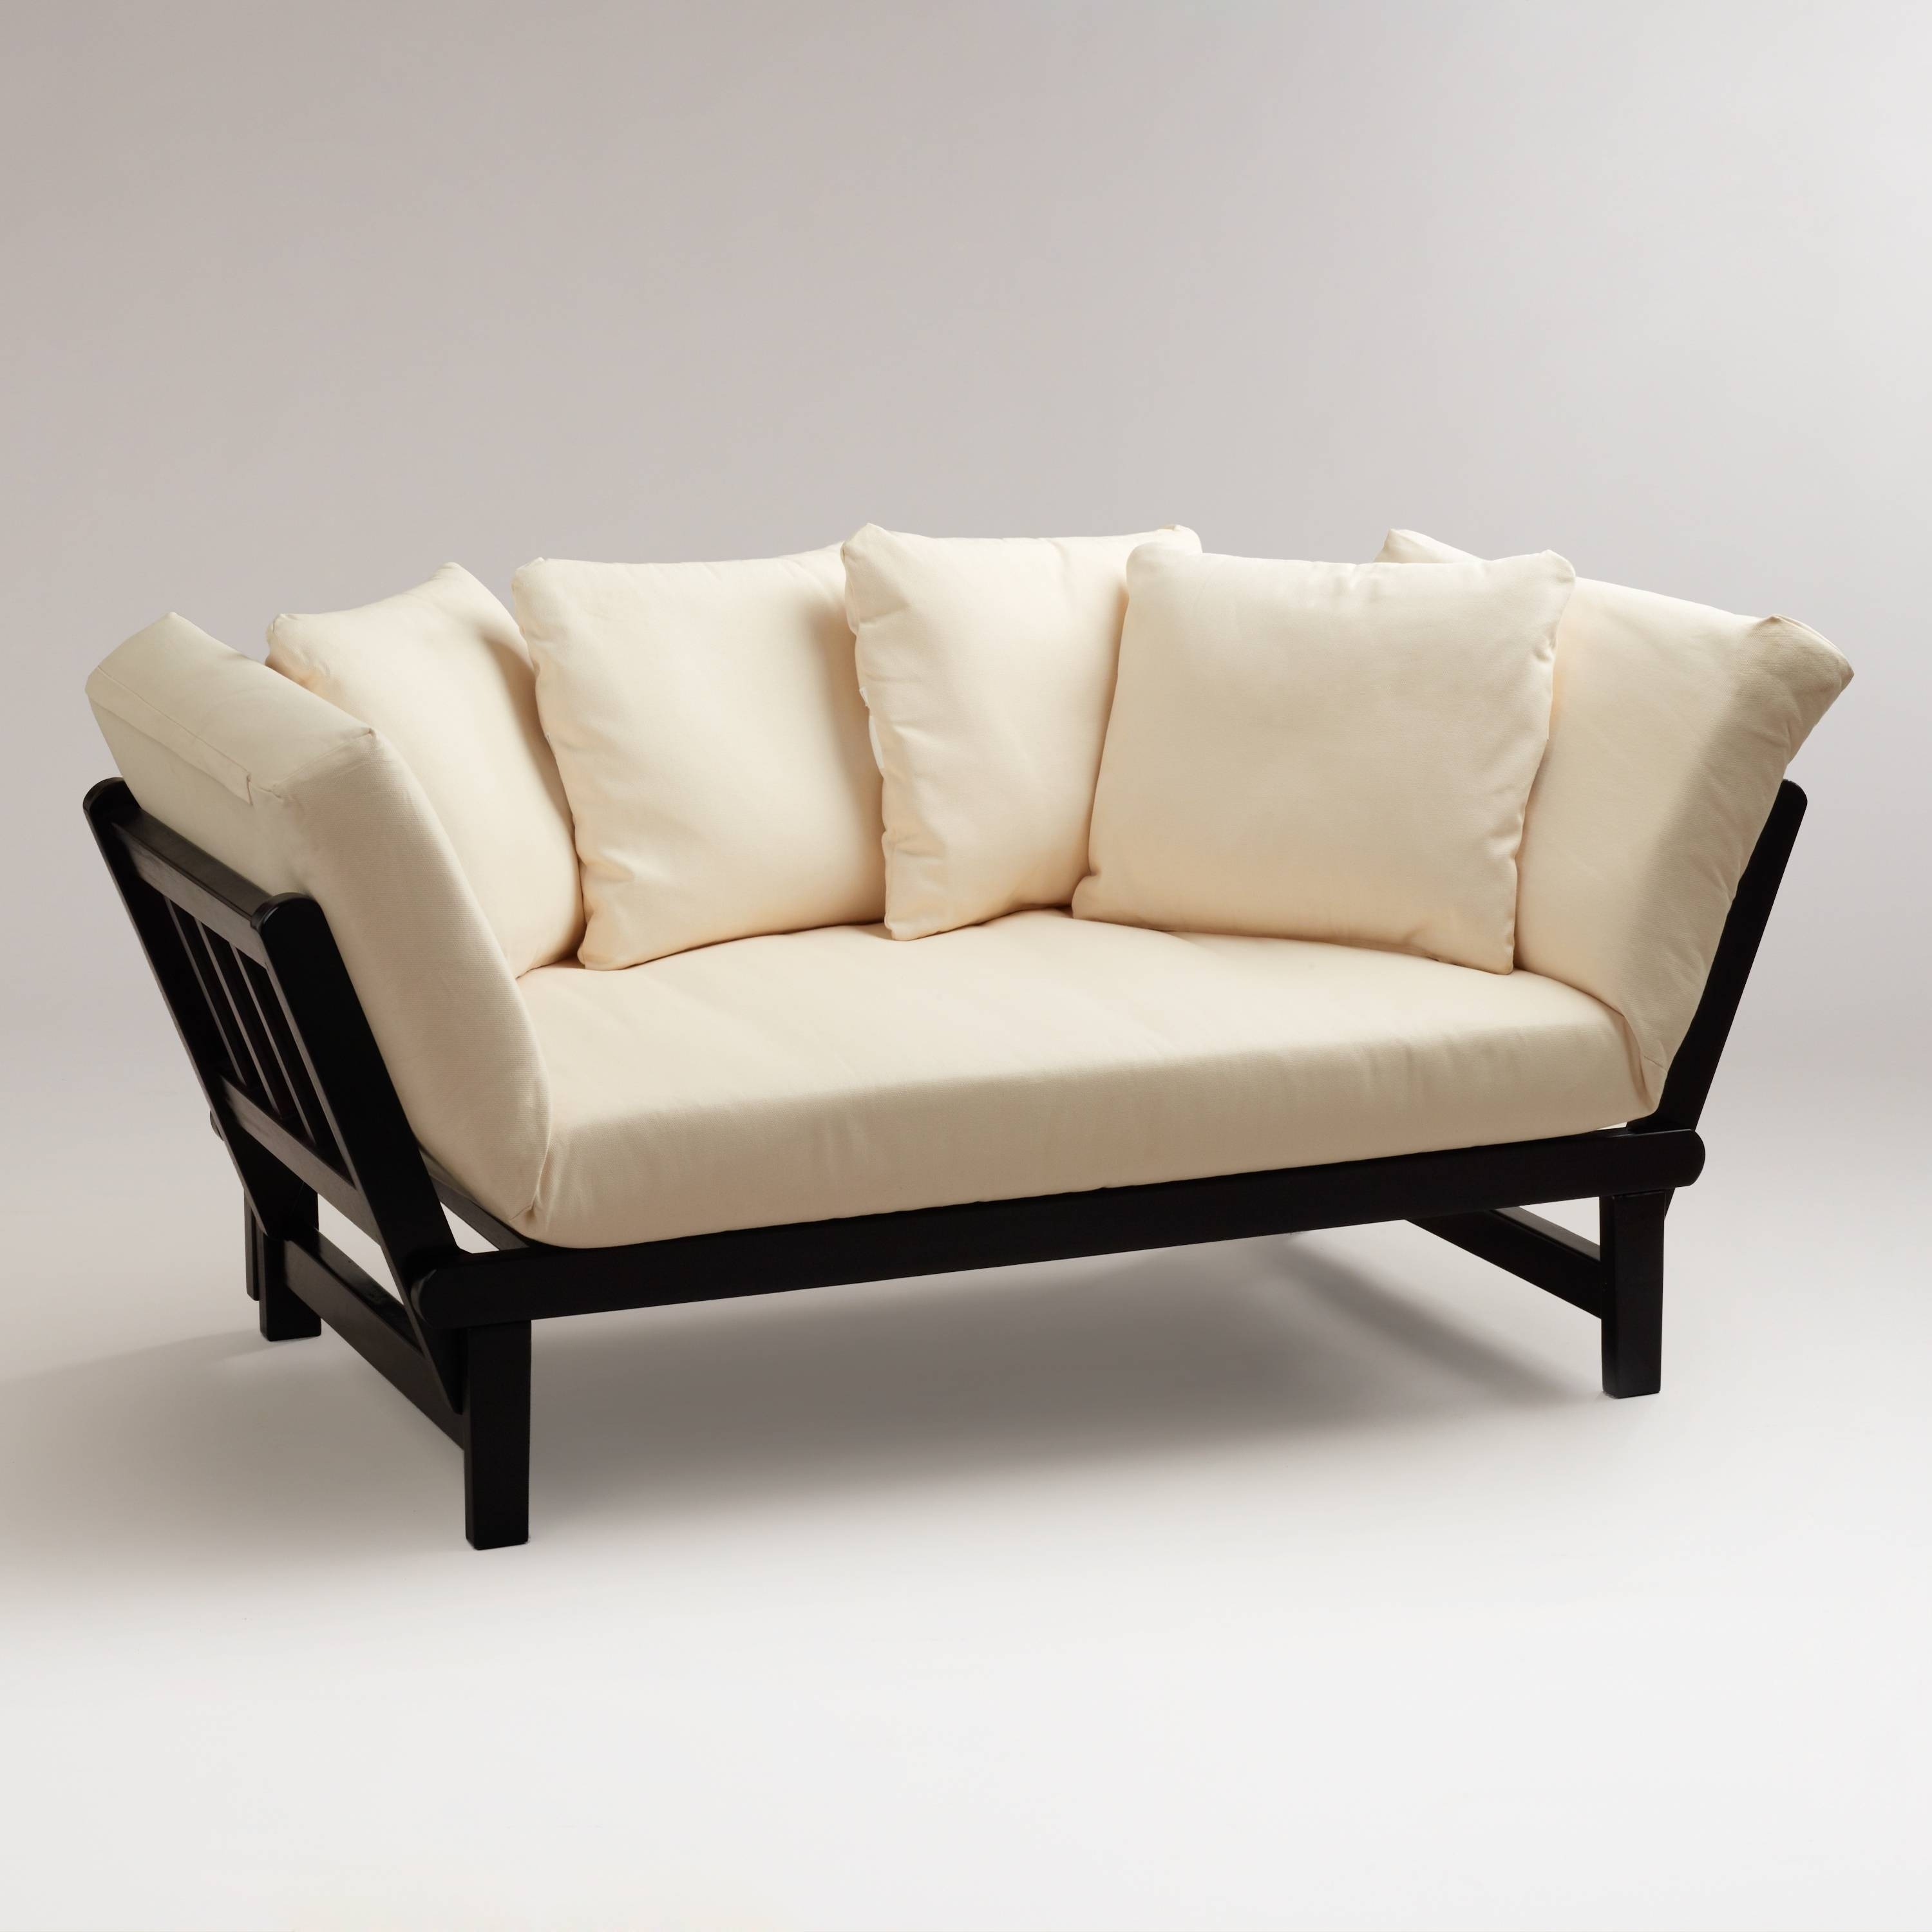 Studio Day Sofa | World Market within Cushion Sofa Beds (Image 29 of 30)